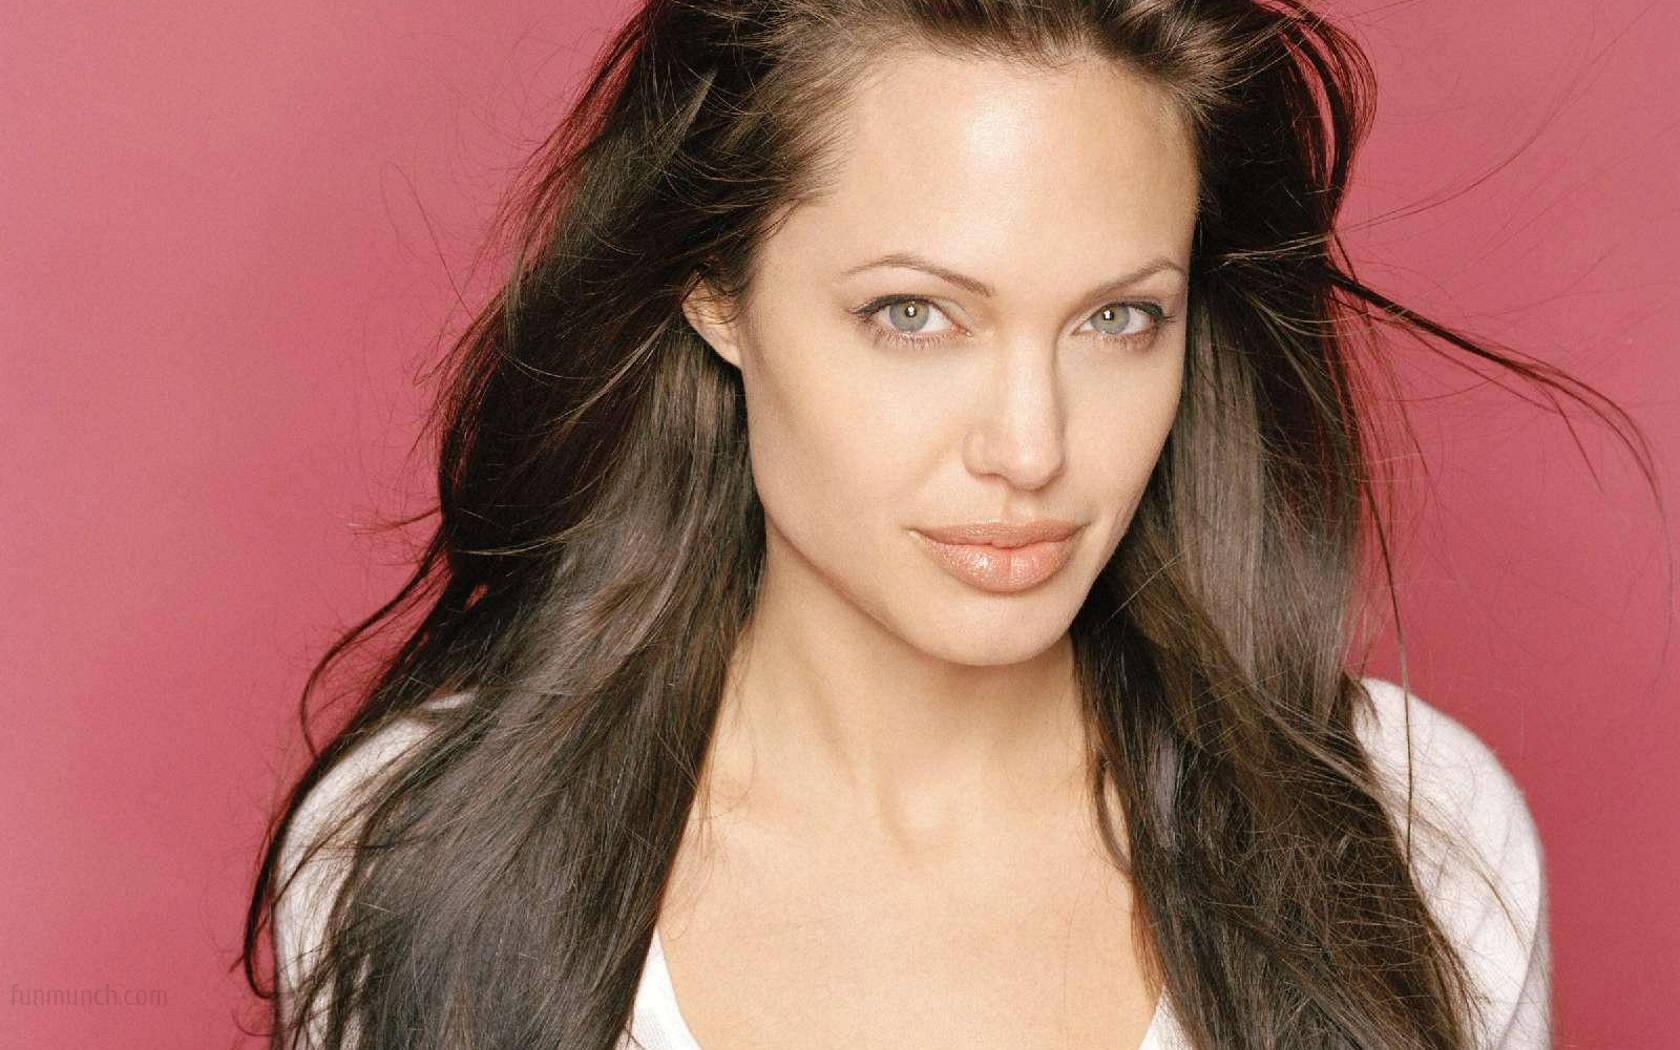 Angelina Jolie: mastectomía radical preventiva